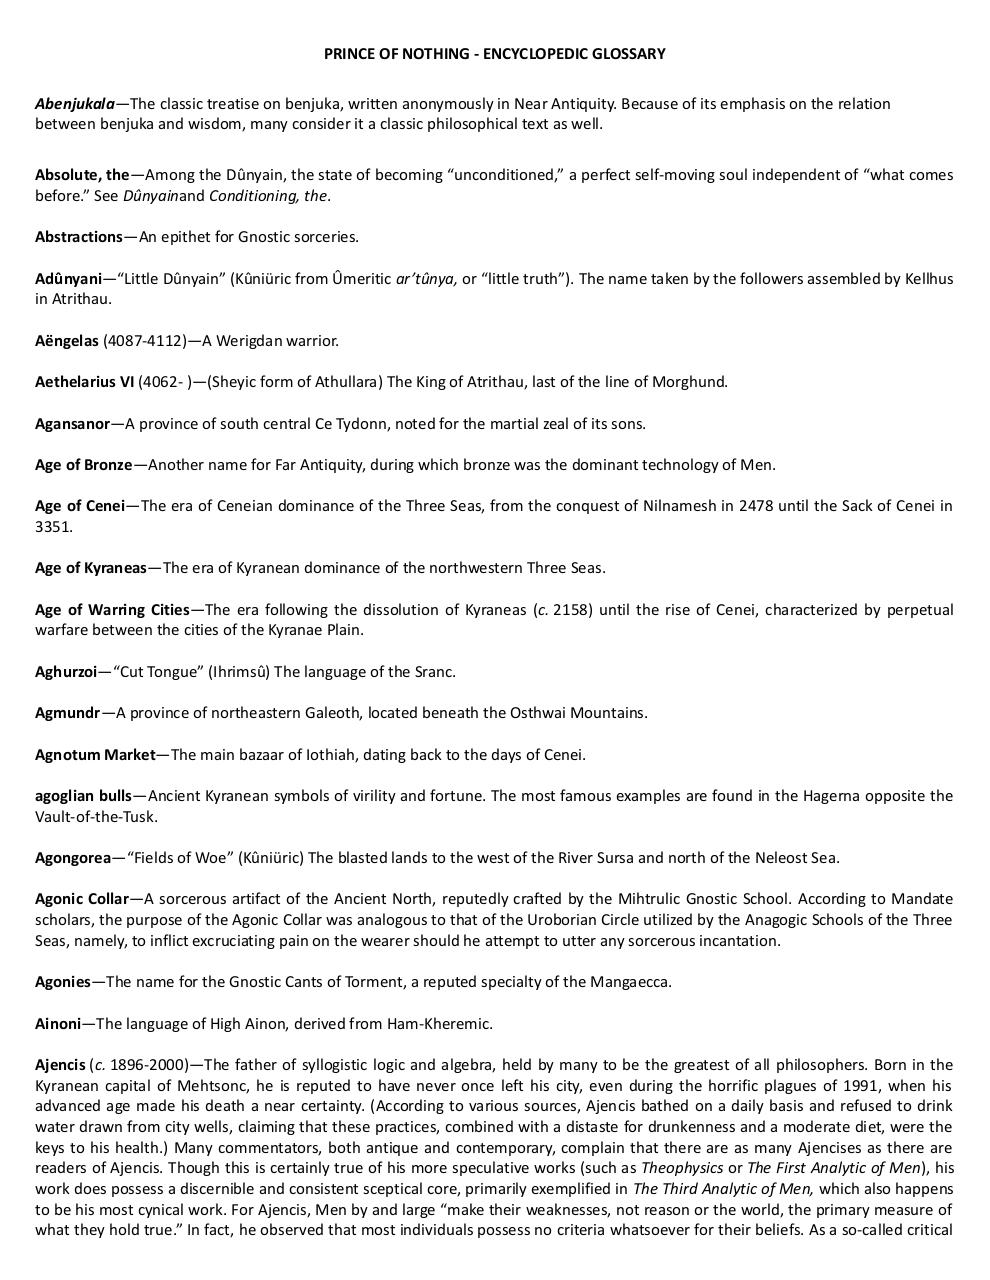 ENCYCLOPEDIC GLOSSARY.pdf - page 1/53